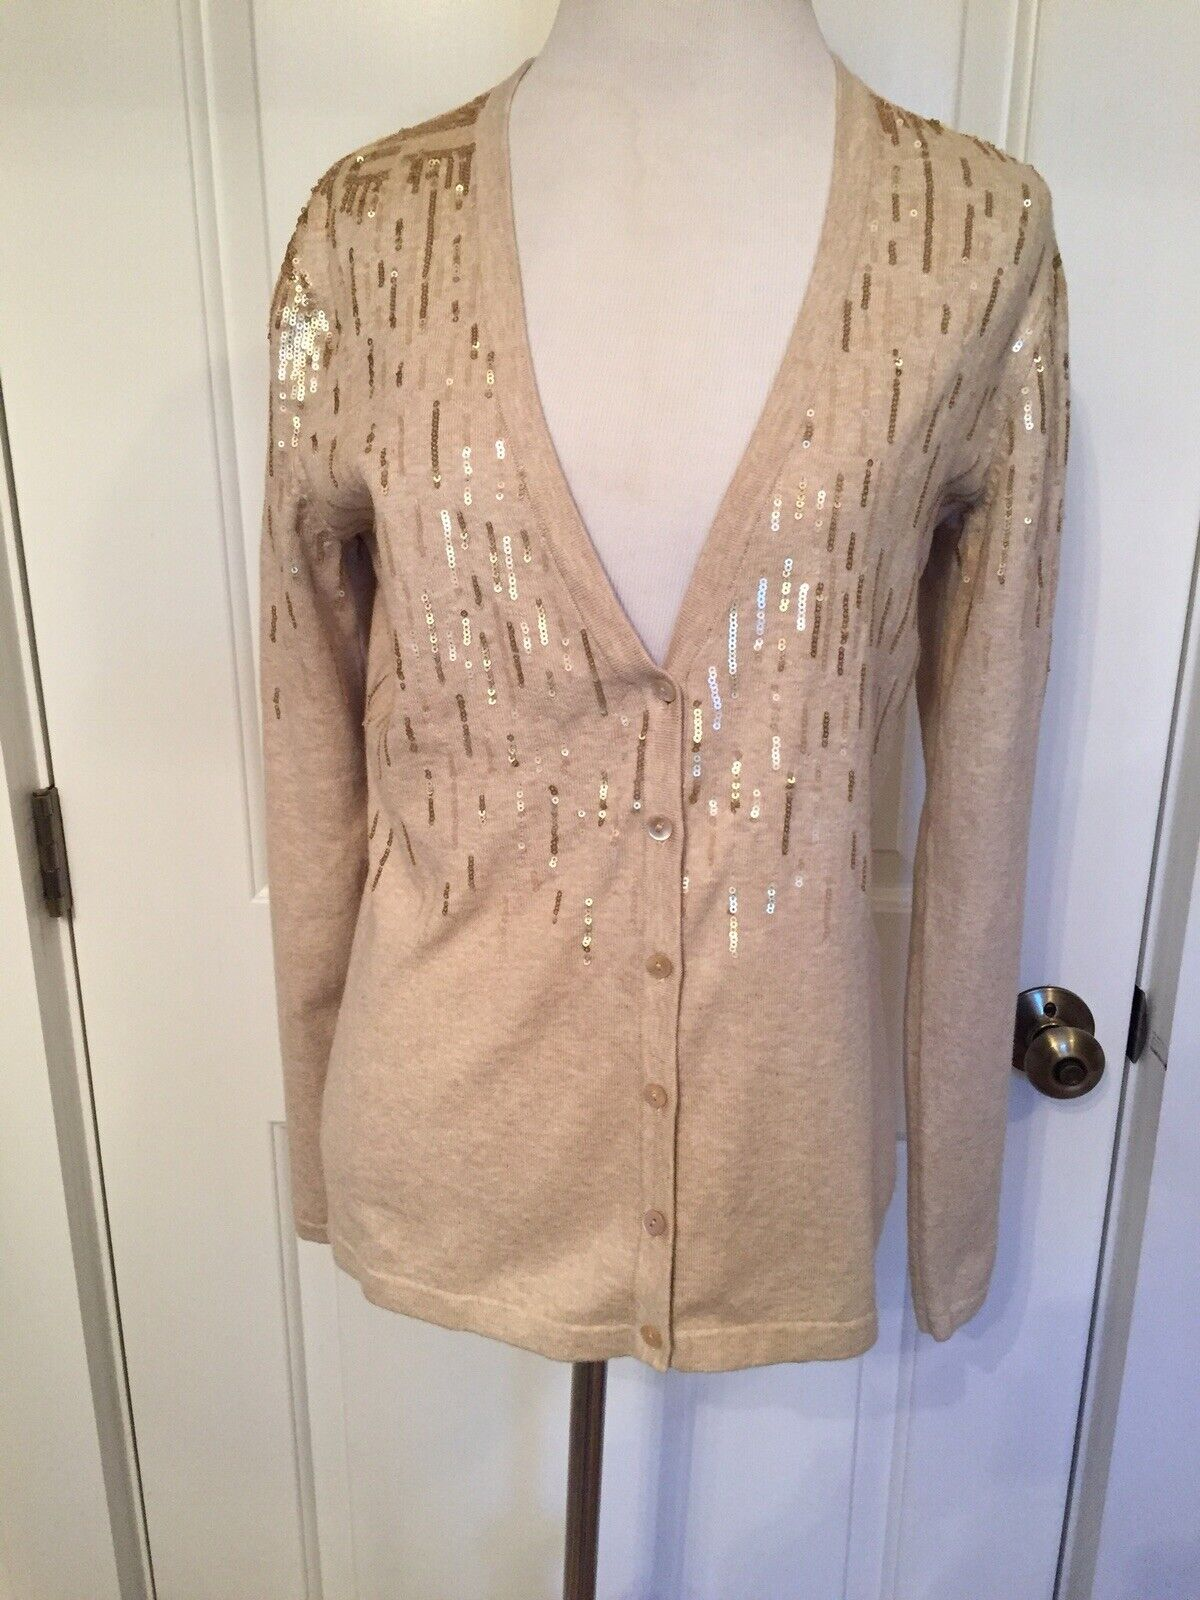 J. McLaughlin Sweater Beige Cardigan  Silber Gold Sequins Long Sleeve XS